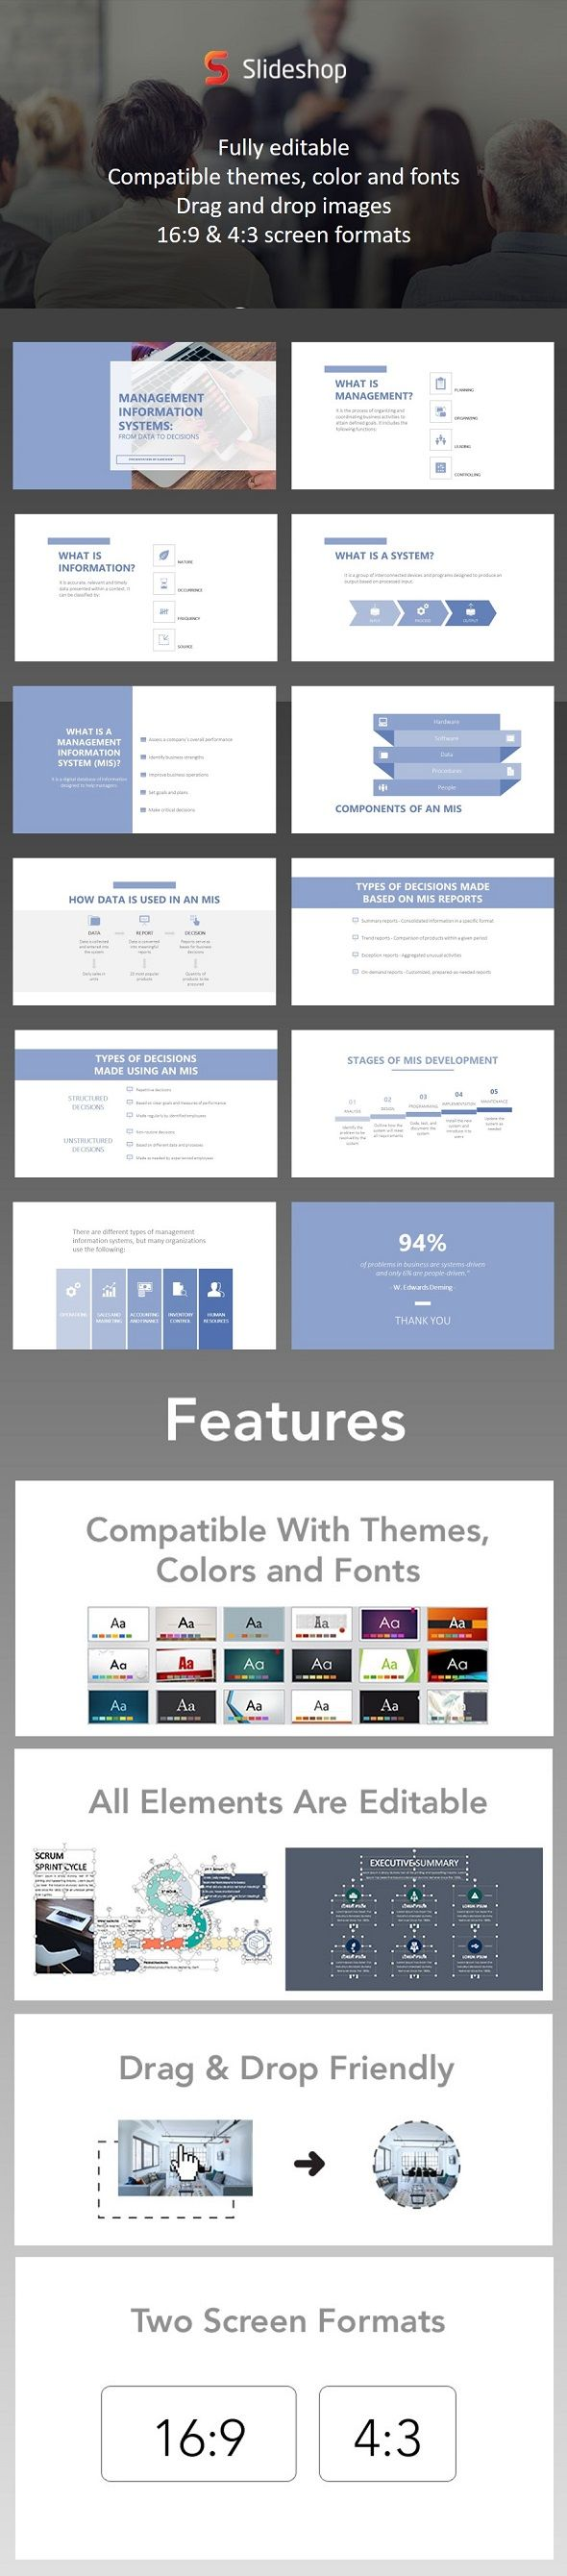 Management Information Systems - #PowerPoint #Templates Presentation Templates Download here:  https://graphicriver.net/item/management-information-systems/20162525?ref=alena994